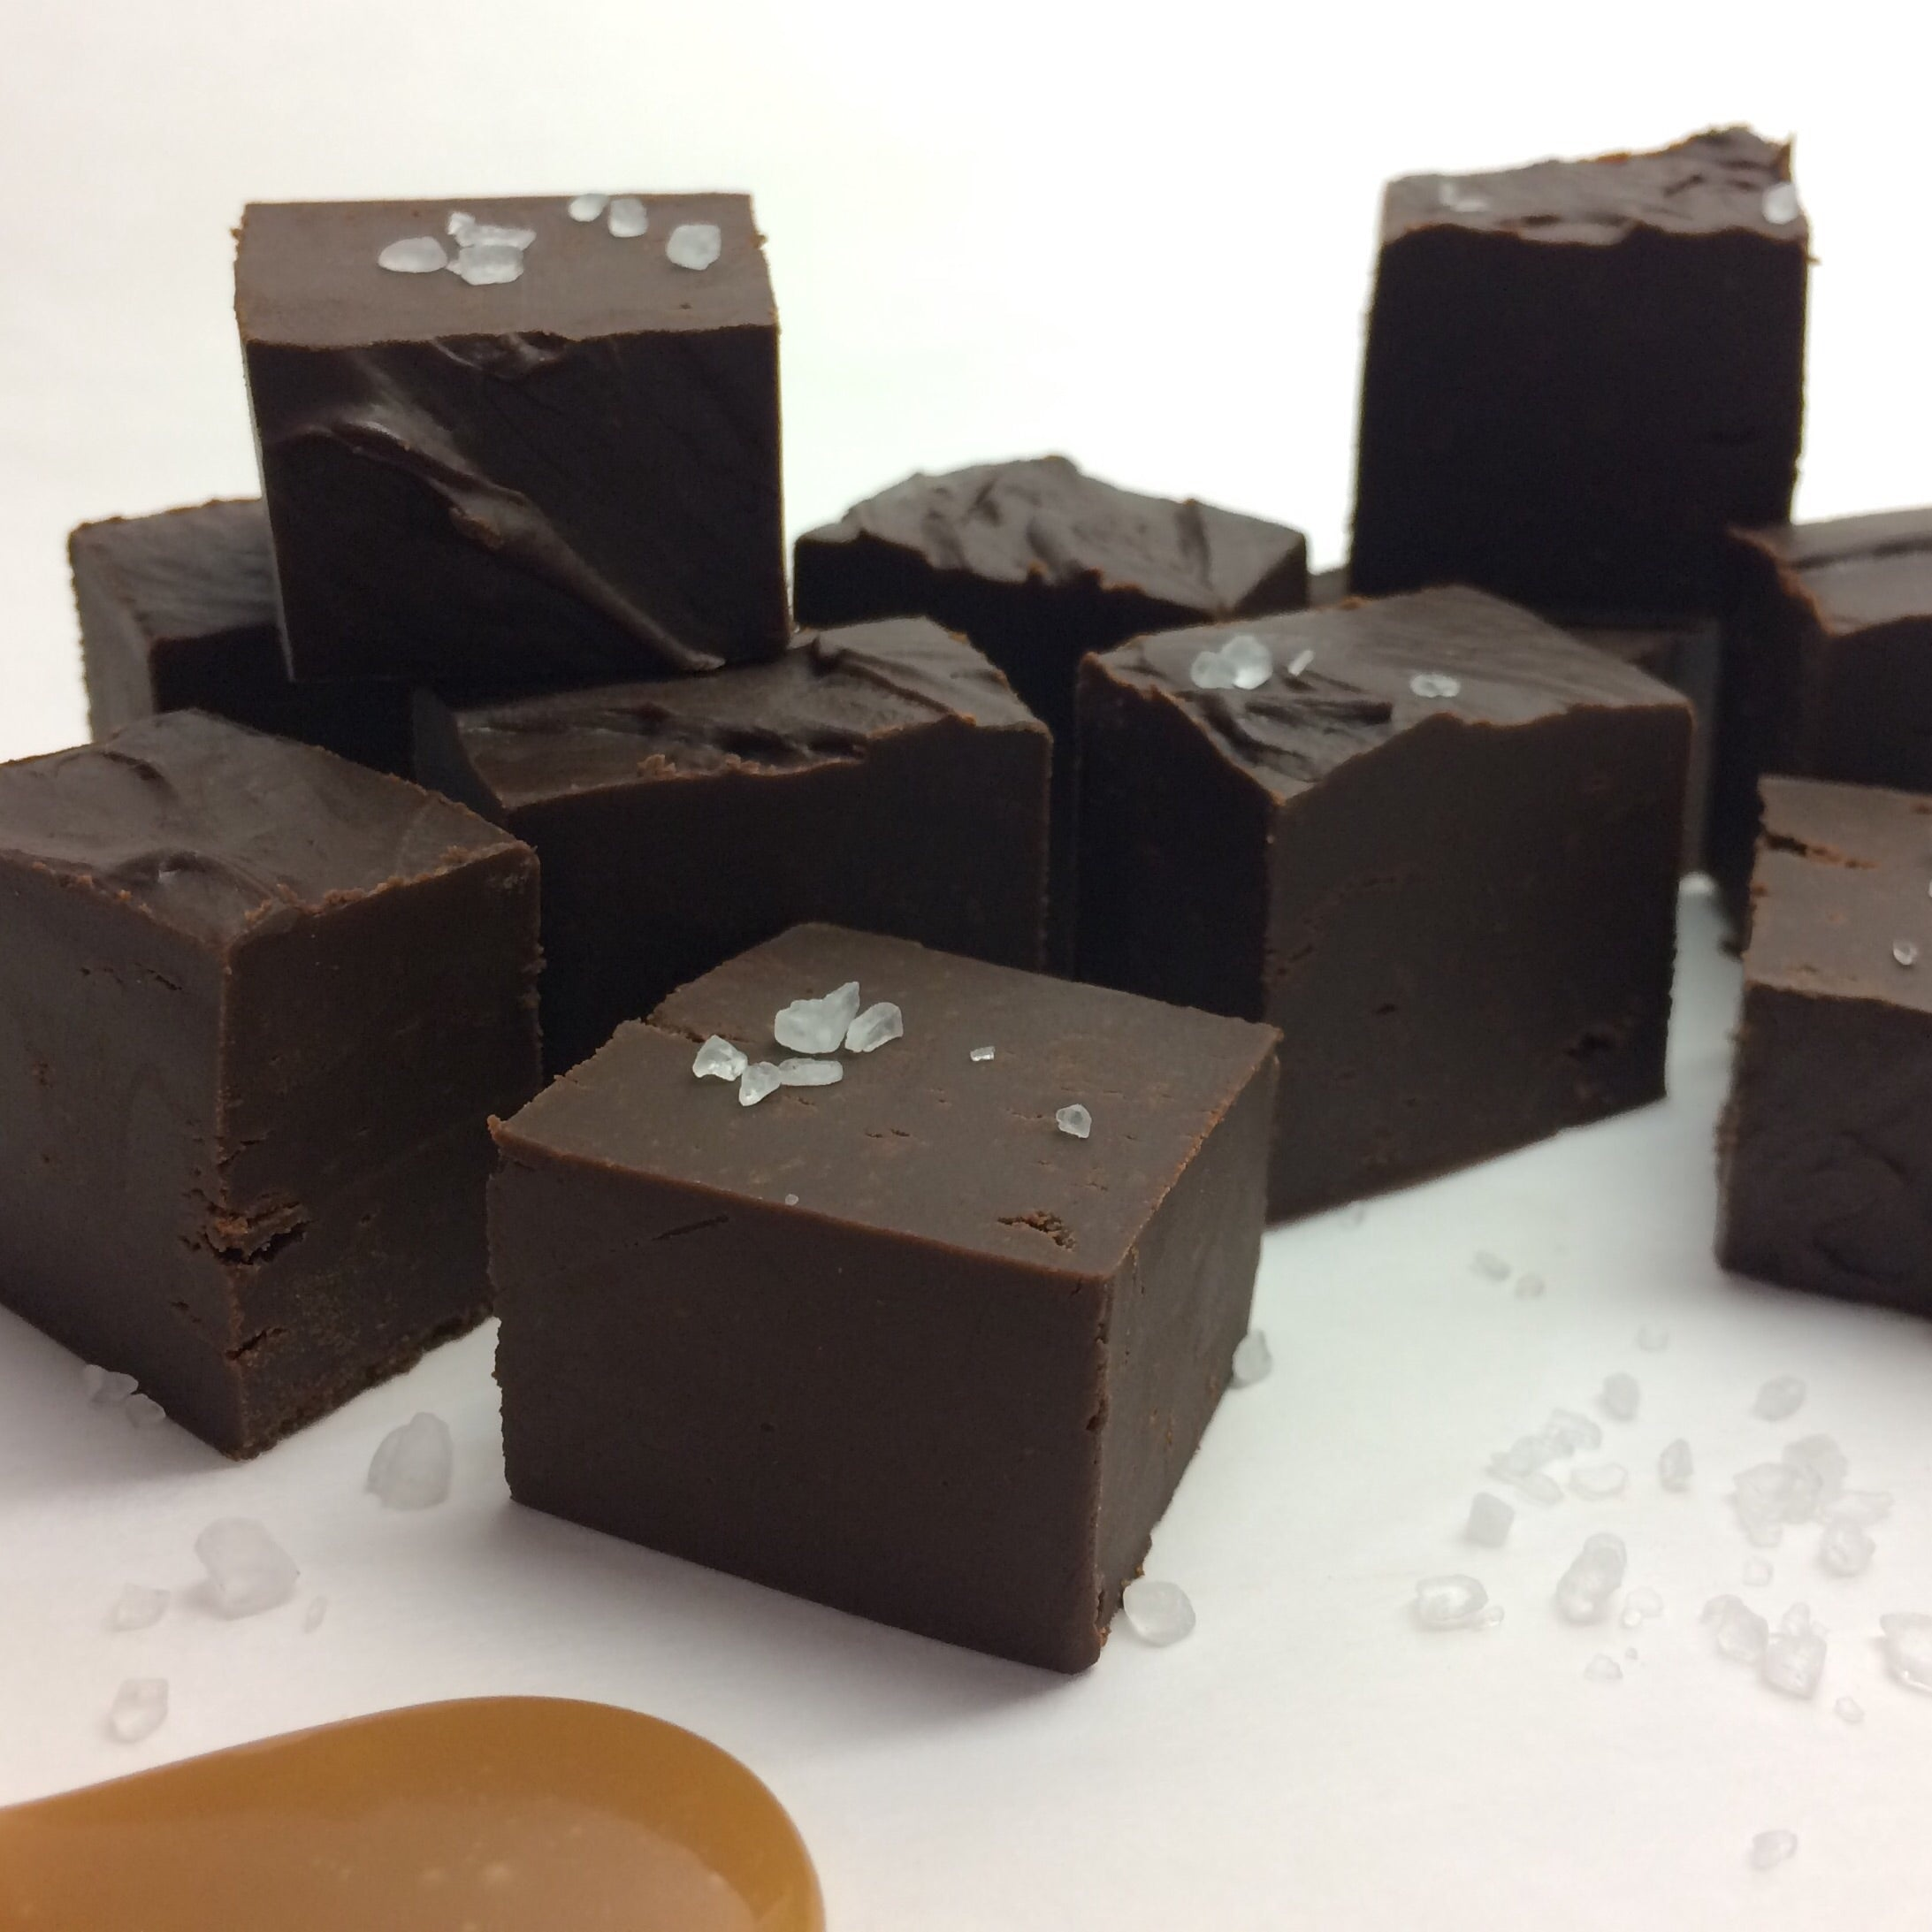 Salted Caramel (Dark Chocolate) Fudge